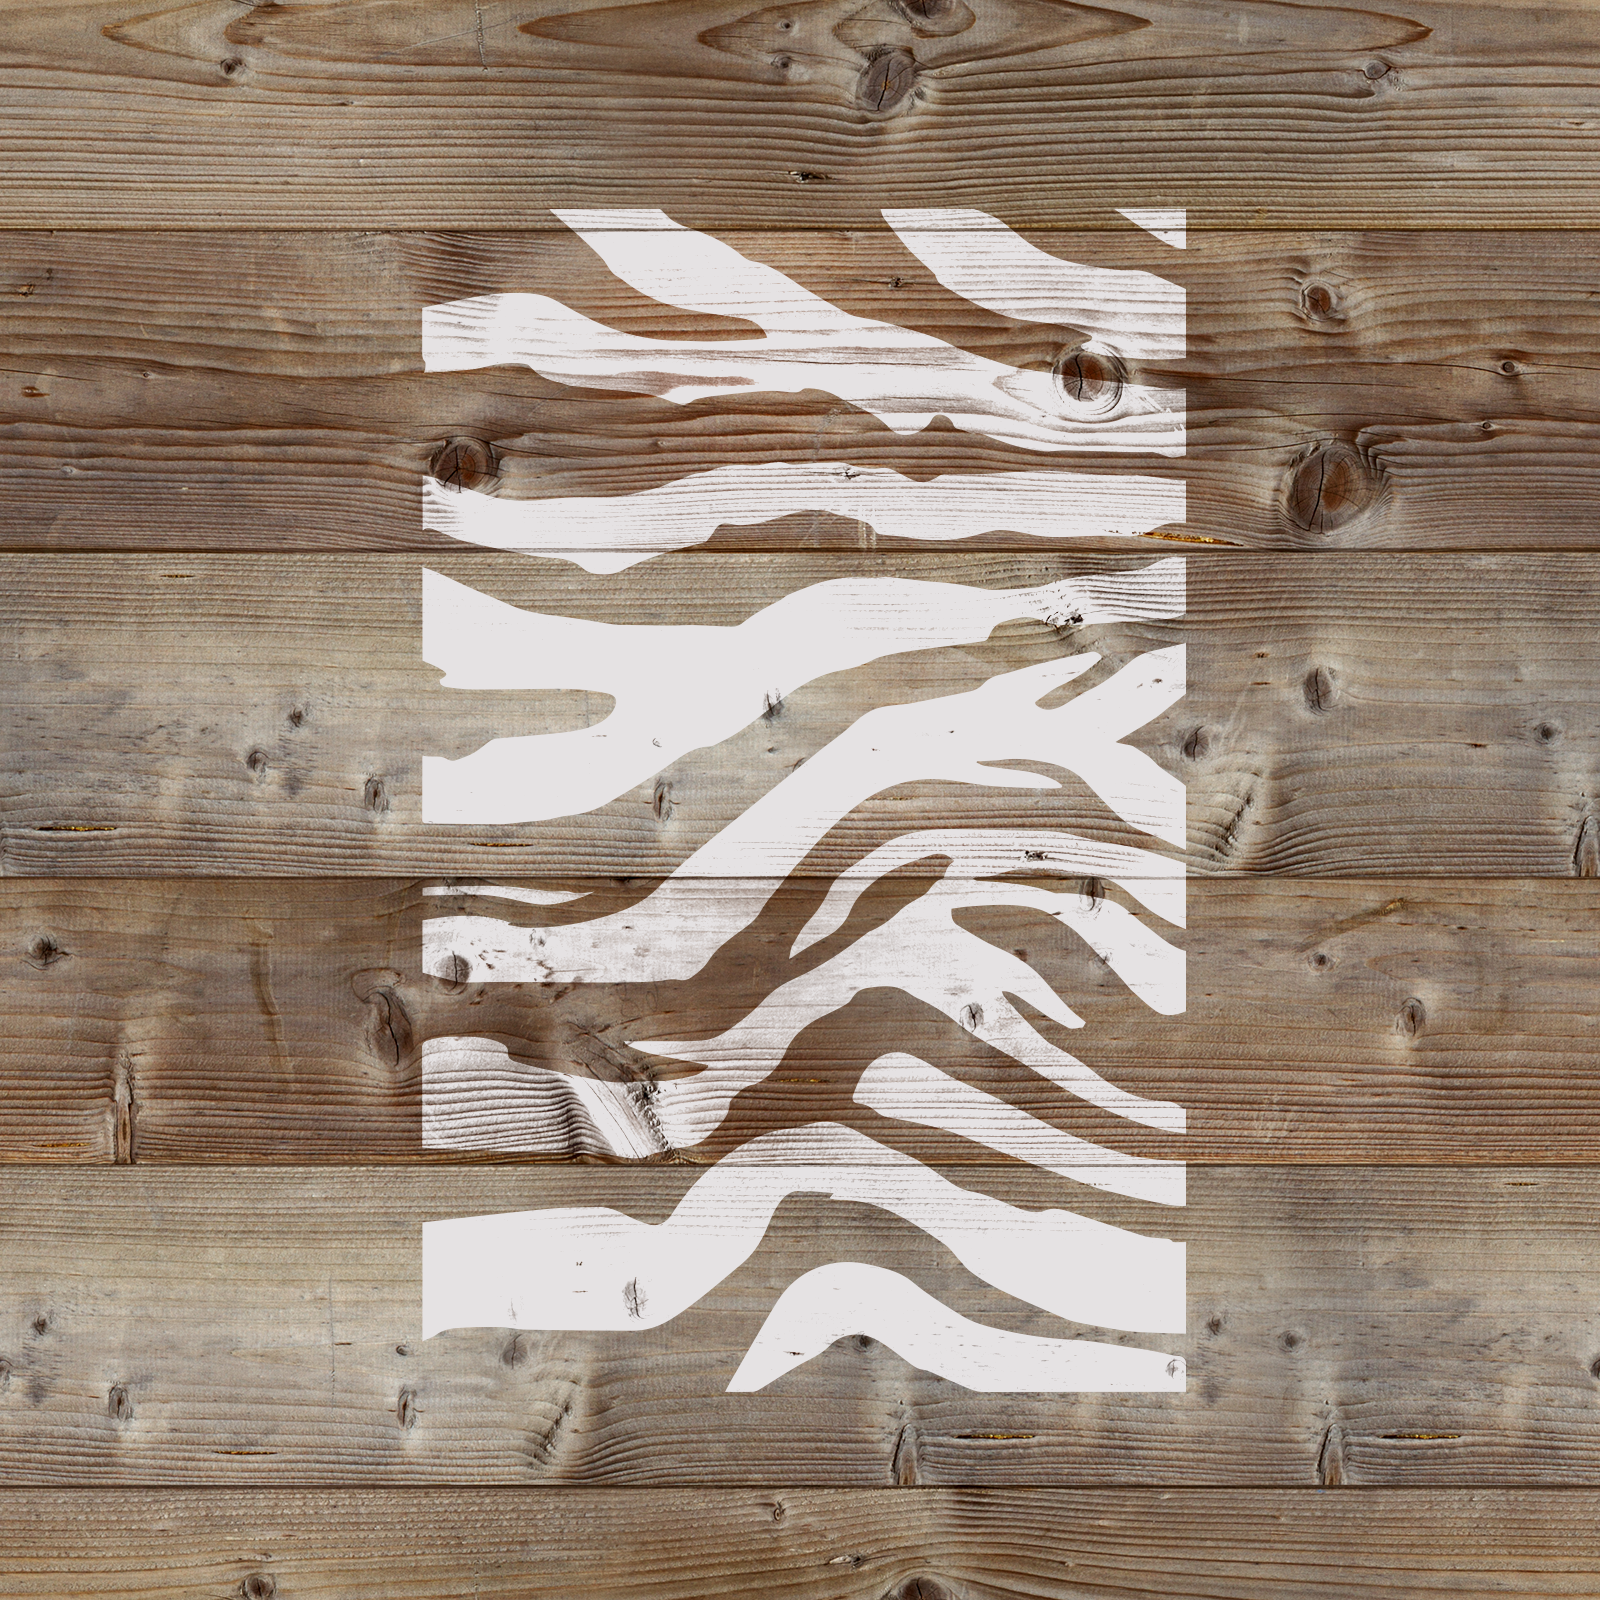 Tiger Stripes Stencil - Reusable Stencils of Tiger Stripes in Multiple Sizes